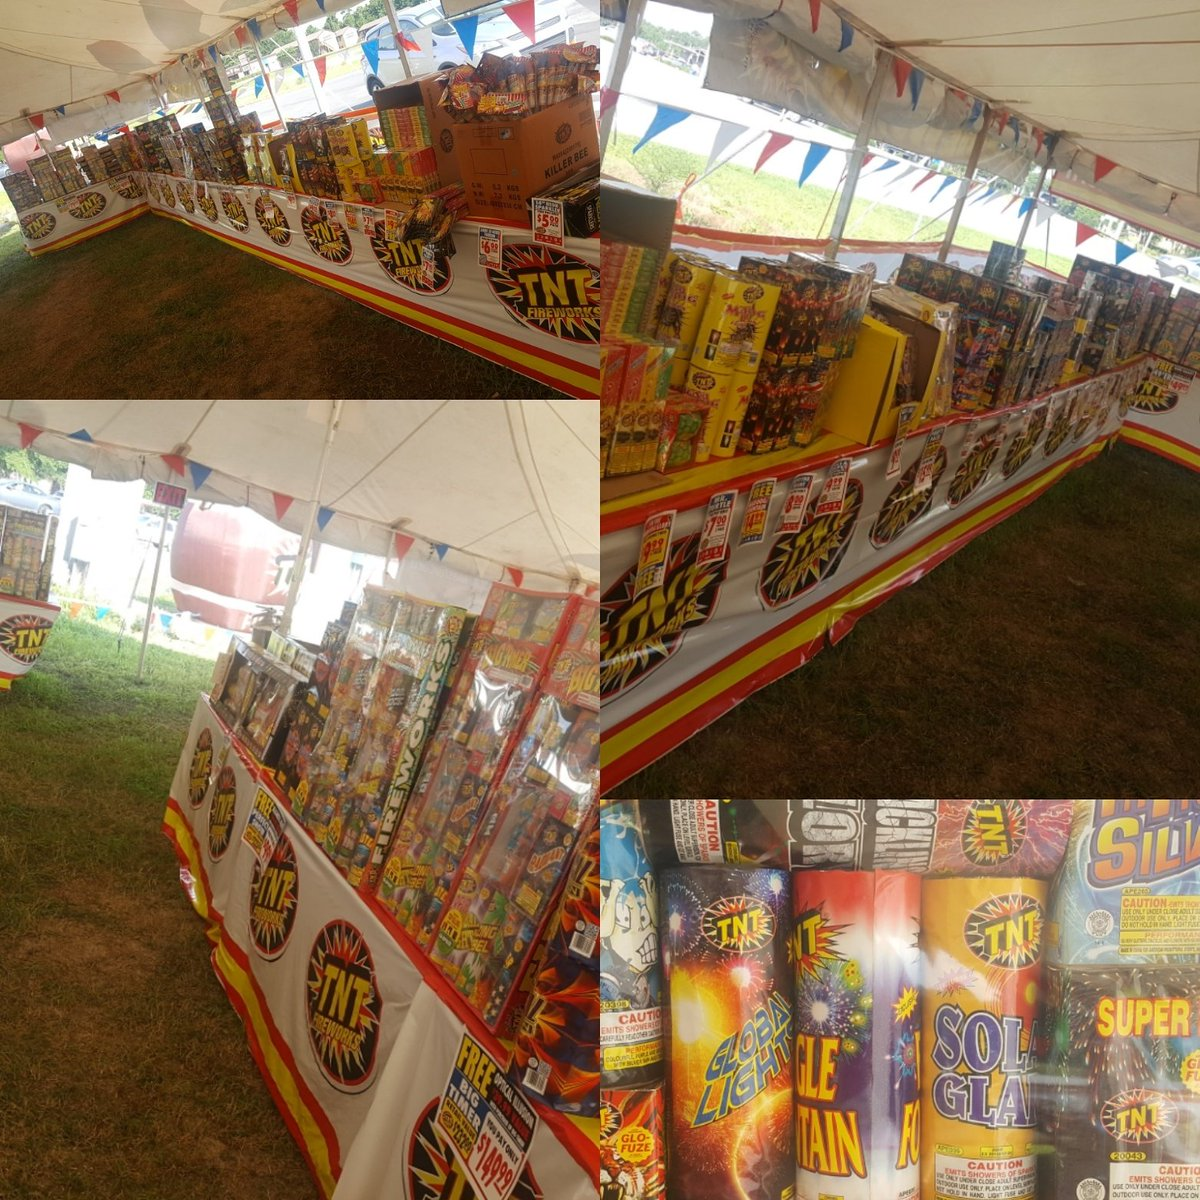 havelock football on twitter havelock touchdown club firework stand tax free across from the walmart in newport